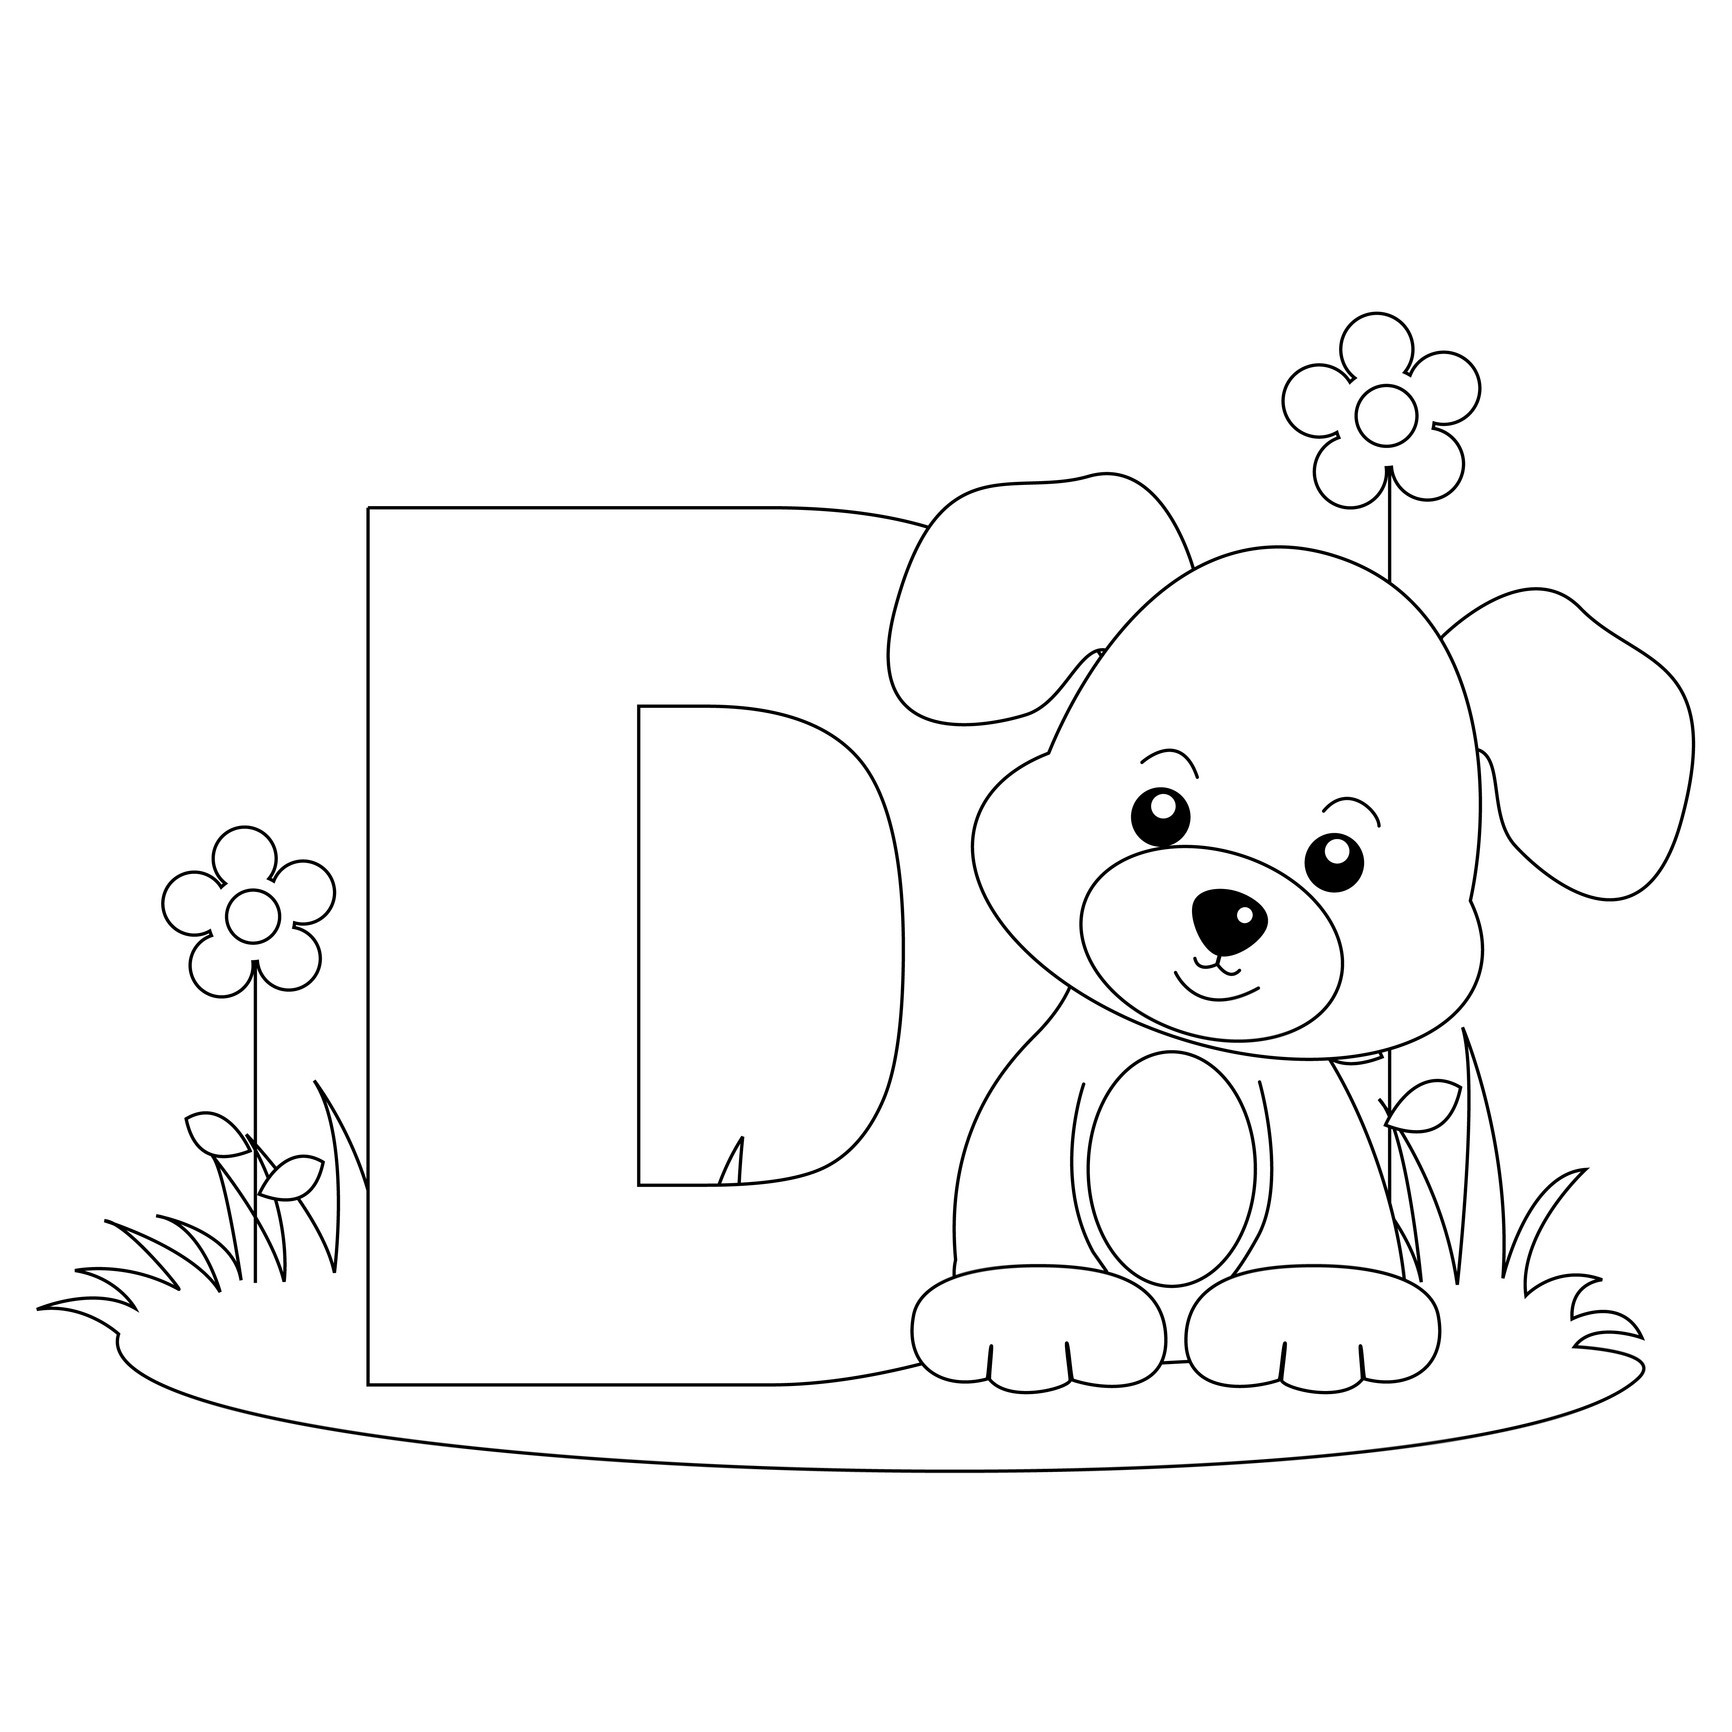 coloring pages alphabet preschool worksheets-#43